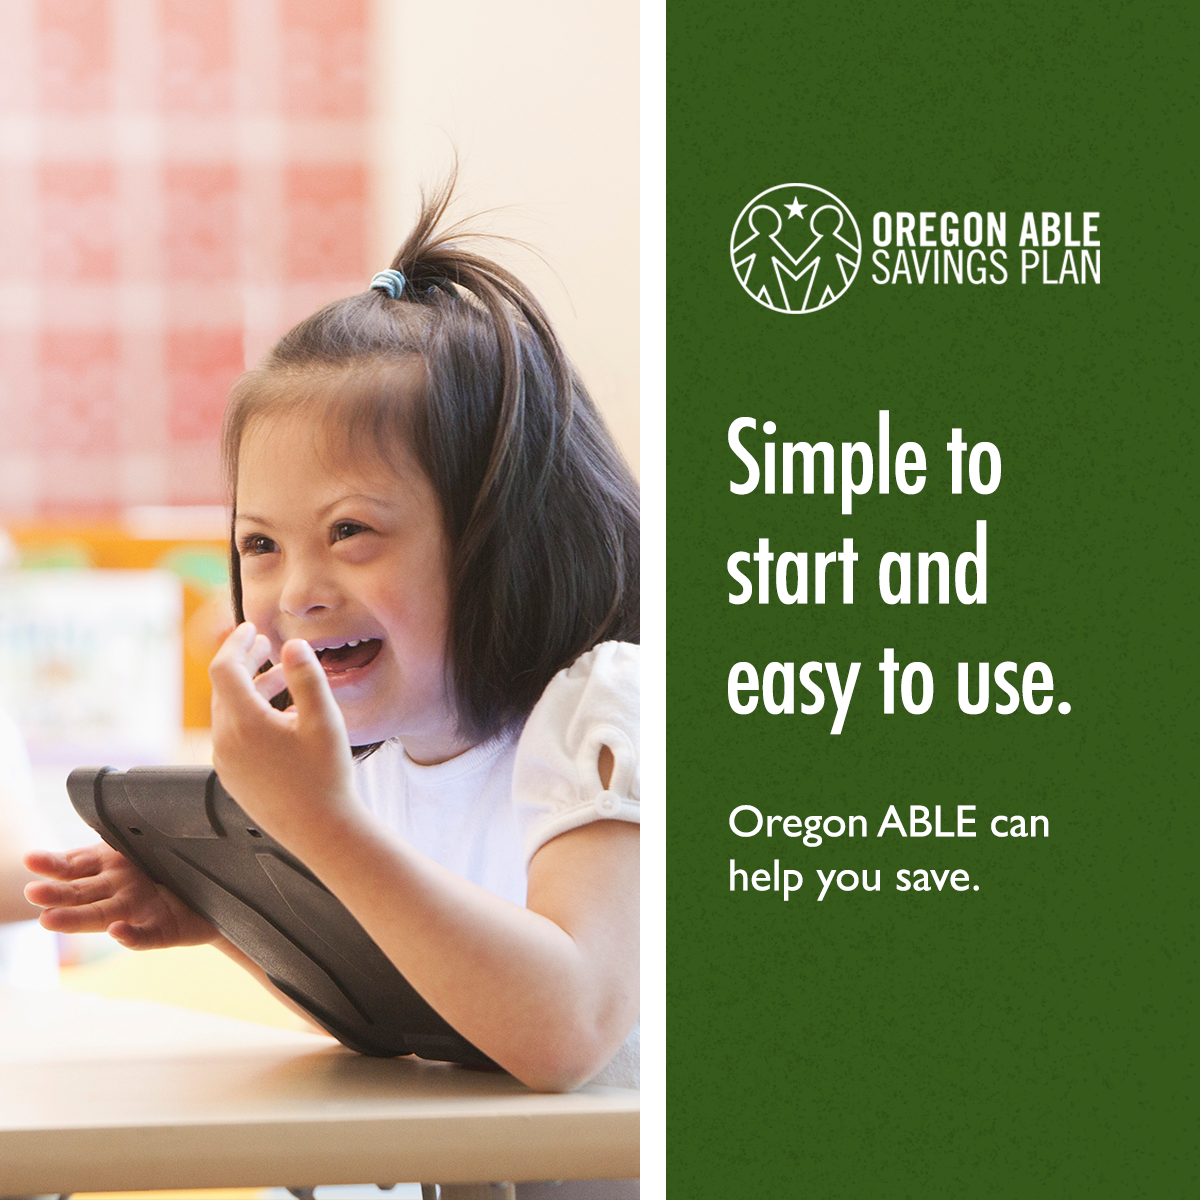 "Young girl with Down syndrome laughs while using a tablet in class next to text that says ""Simple to start and easy to use. Oregon ABLE can help you save."""